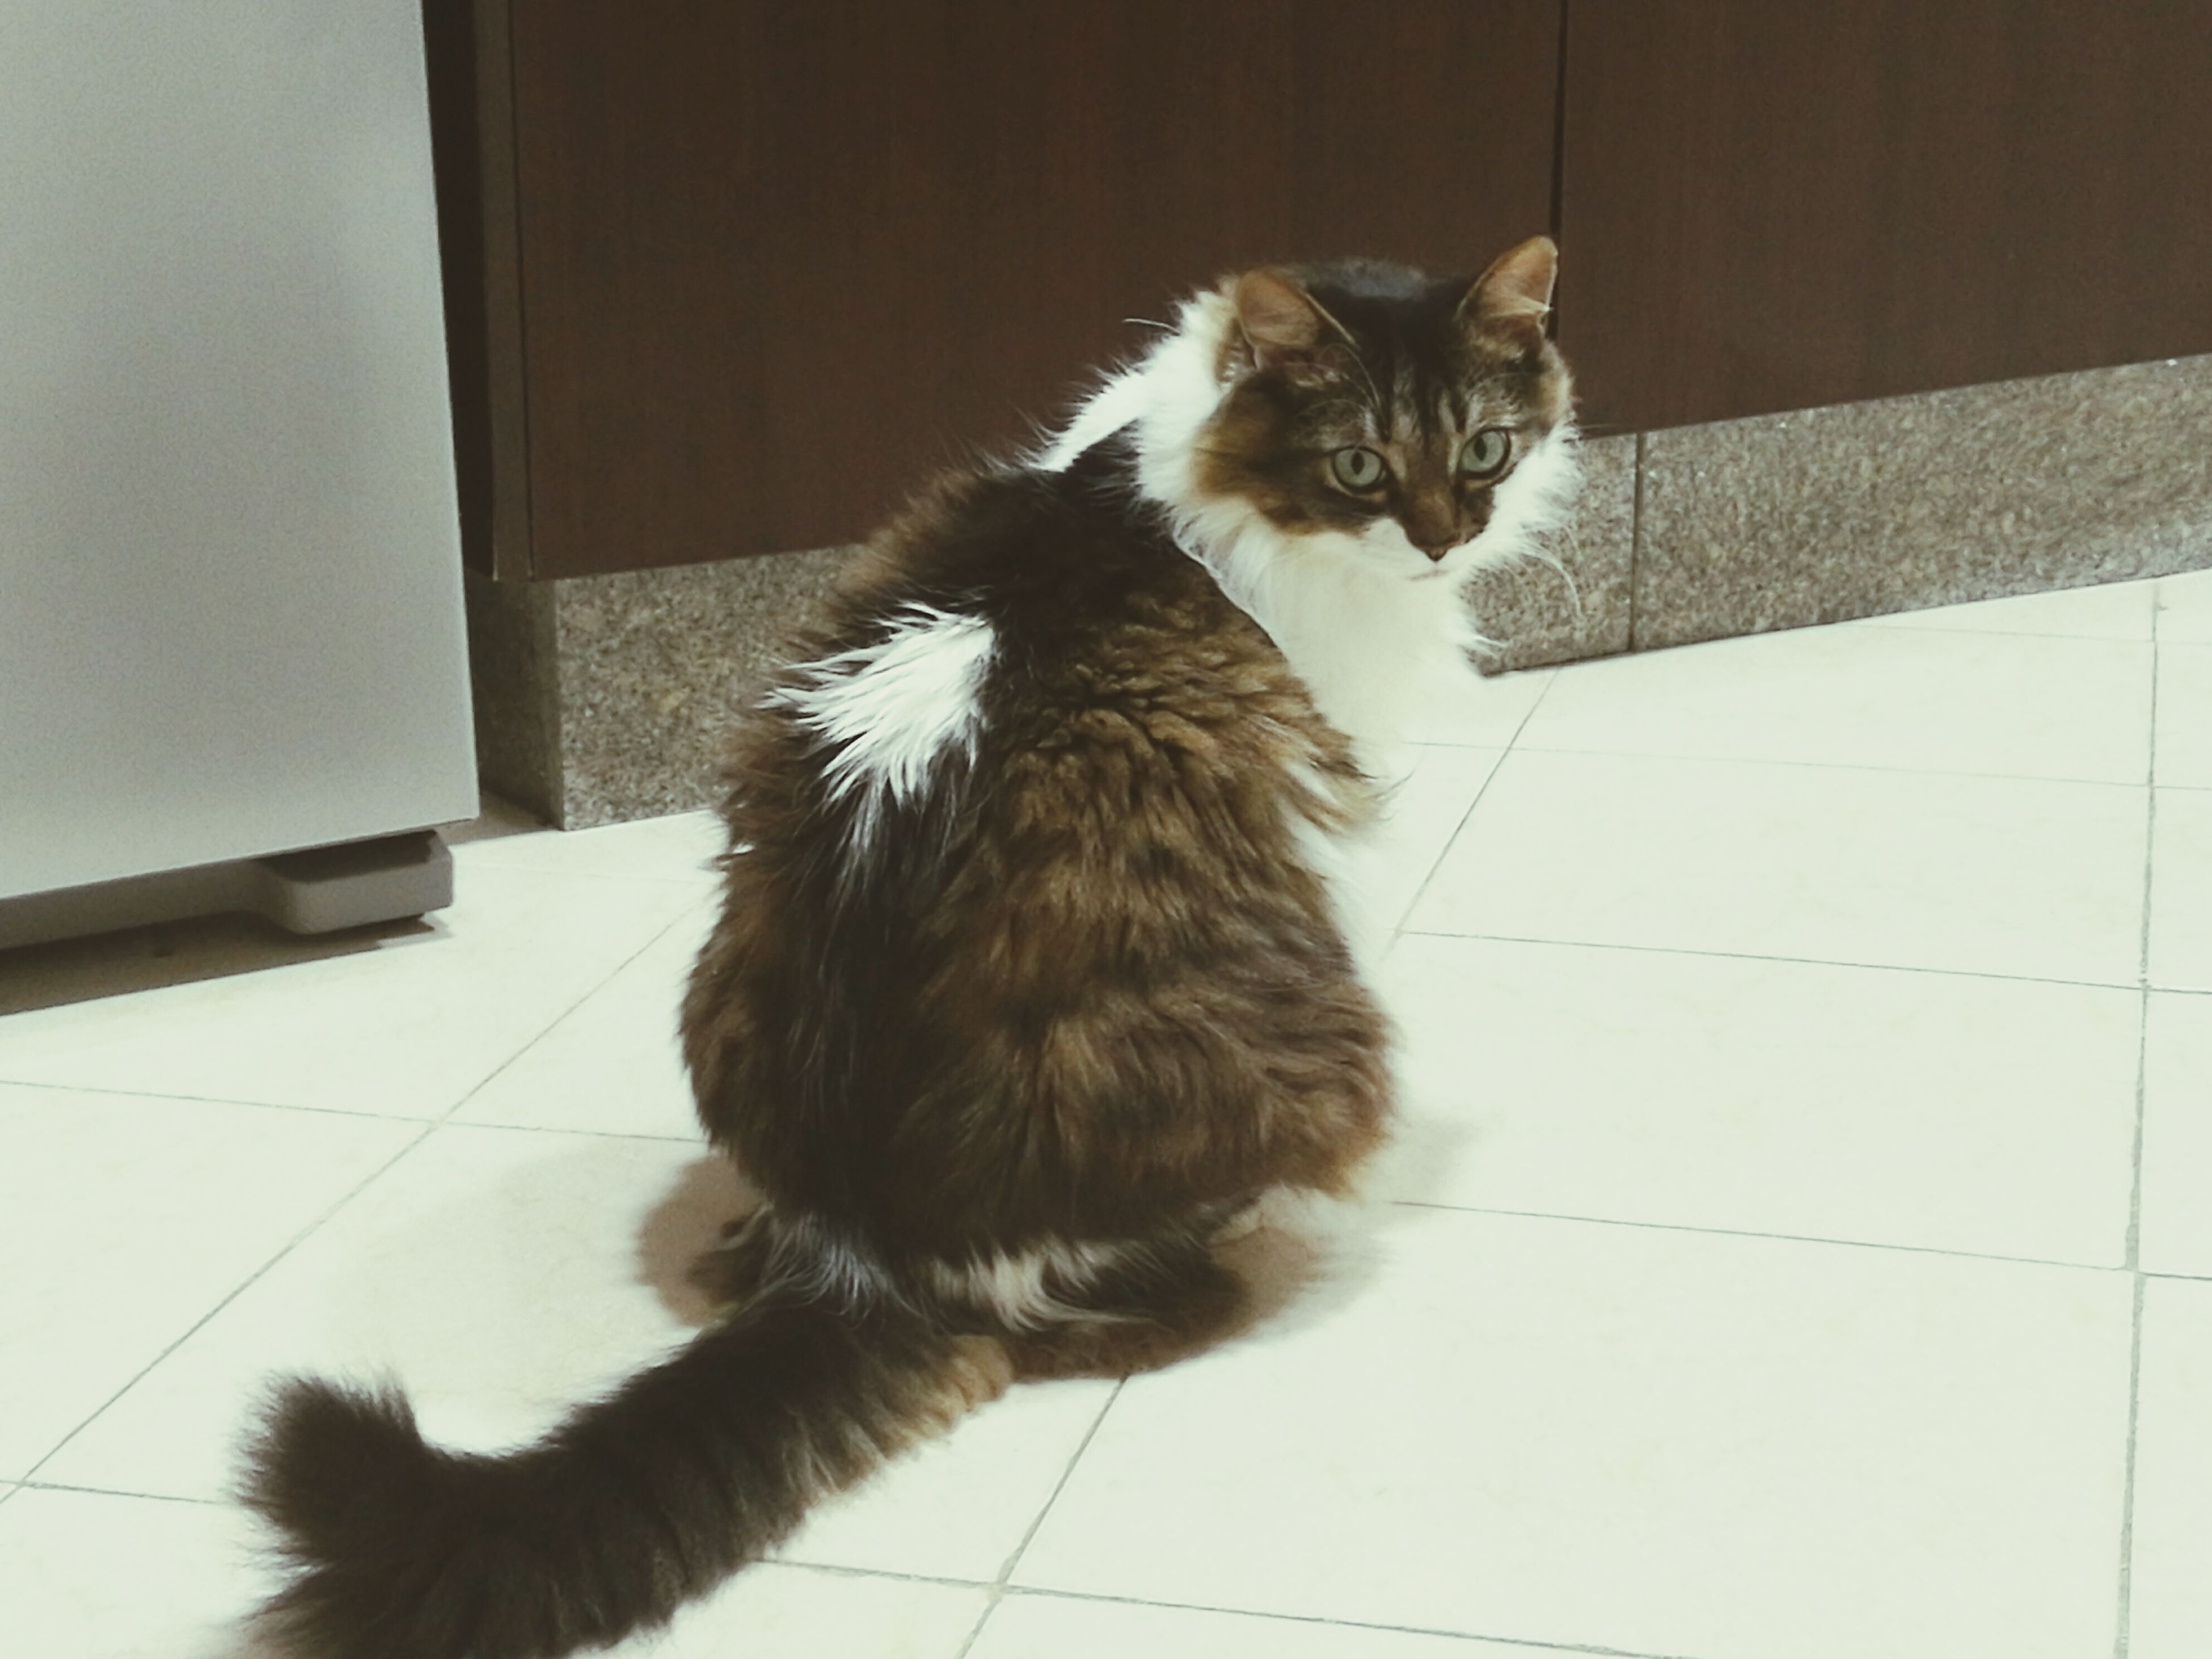 one animal, animal themes, pets, domestic animals, mammal, domestic cat, indoors, cat, feline, sitting, full length, looking away, flooring, zoology, close-up, home interior, vertebrate, whisker, tiled floor, no people